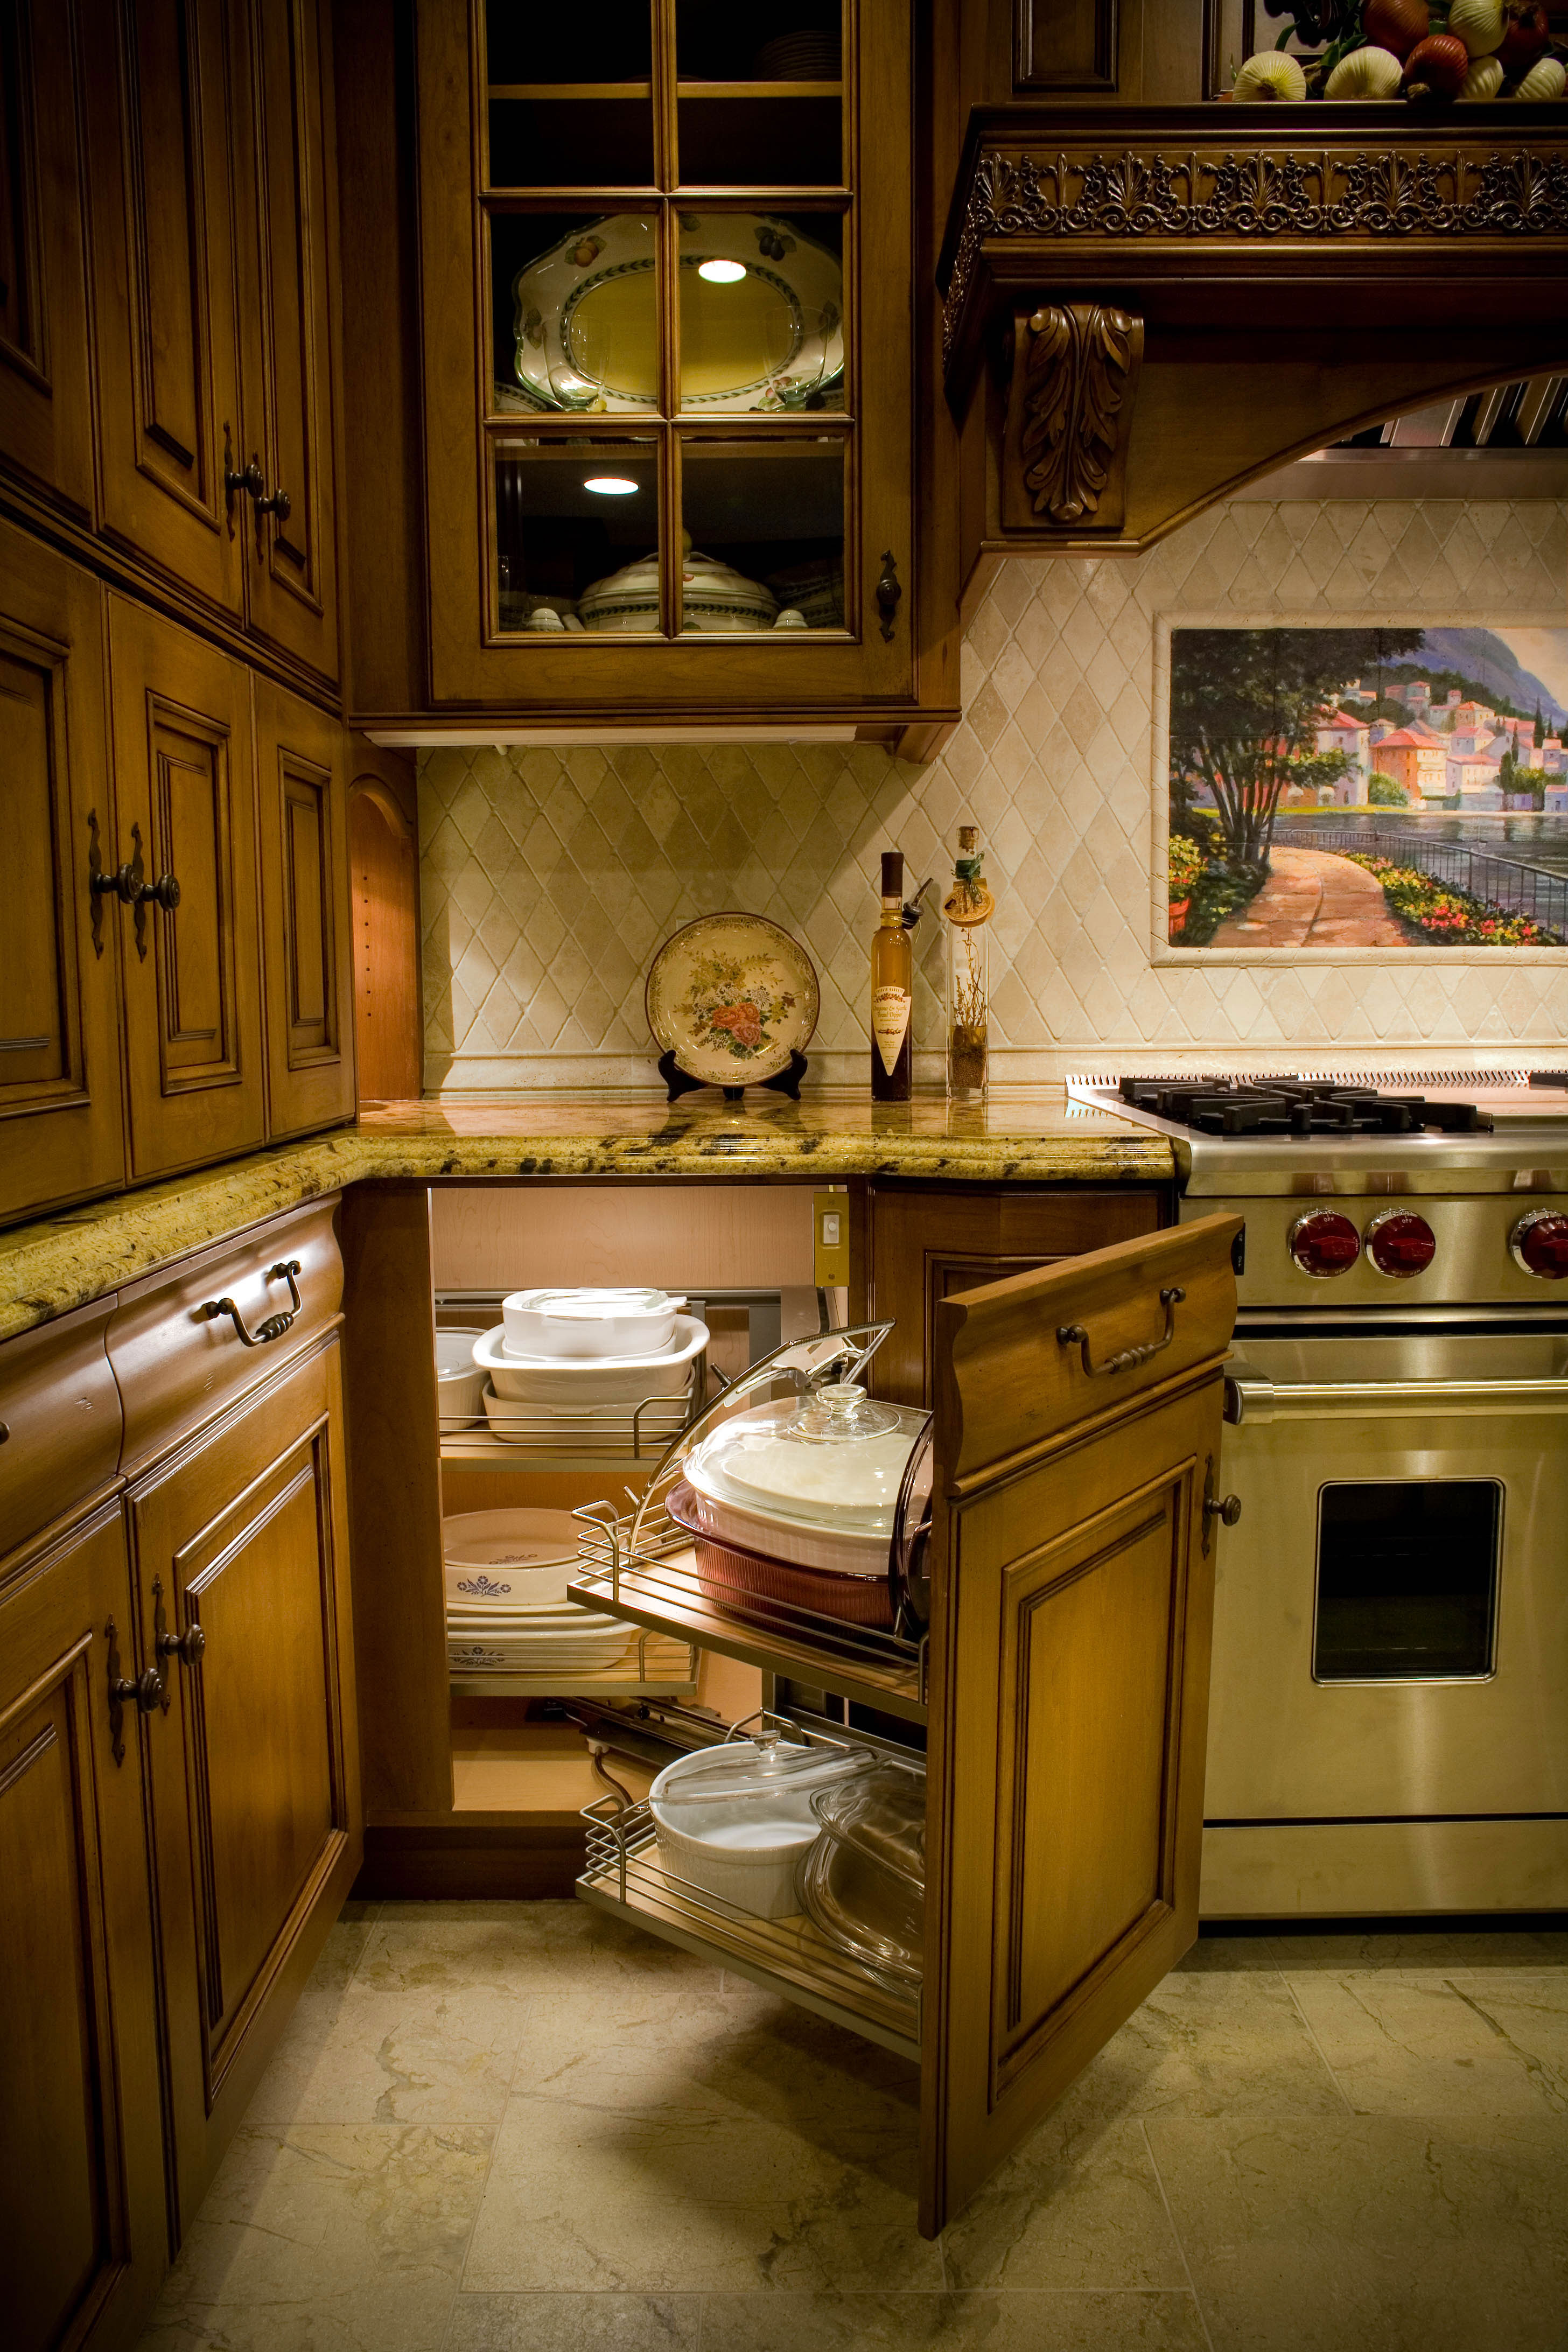 lower-cabinet-pots-and-pans-compressed